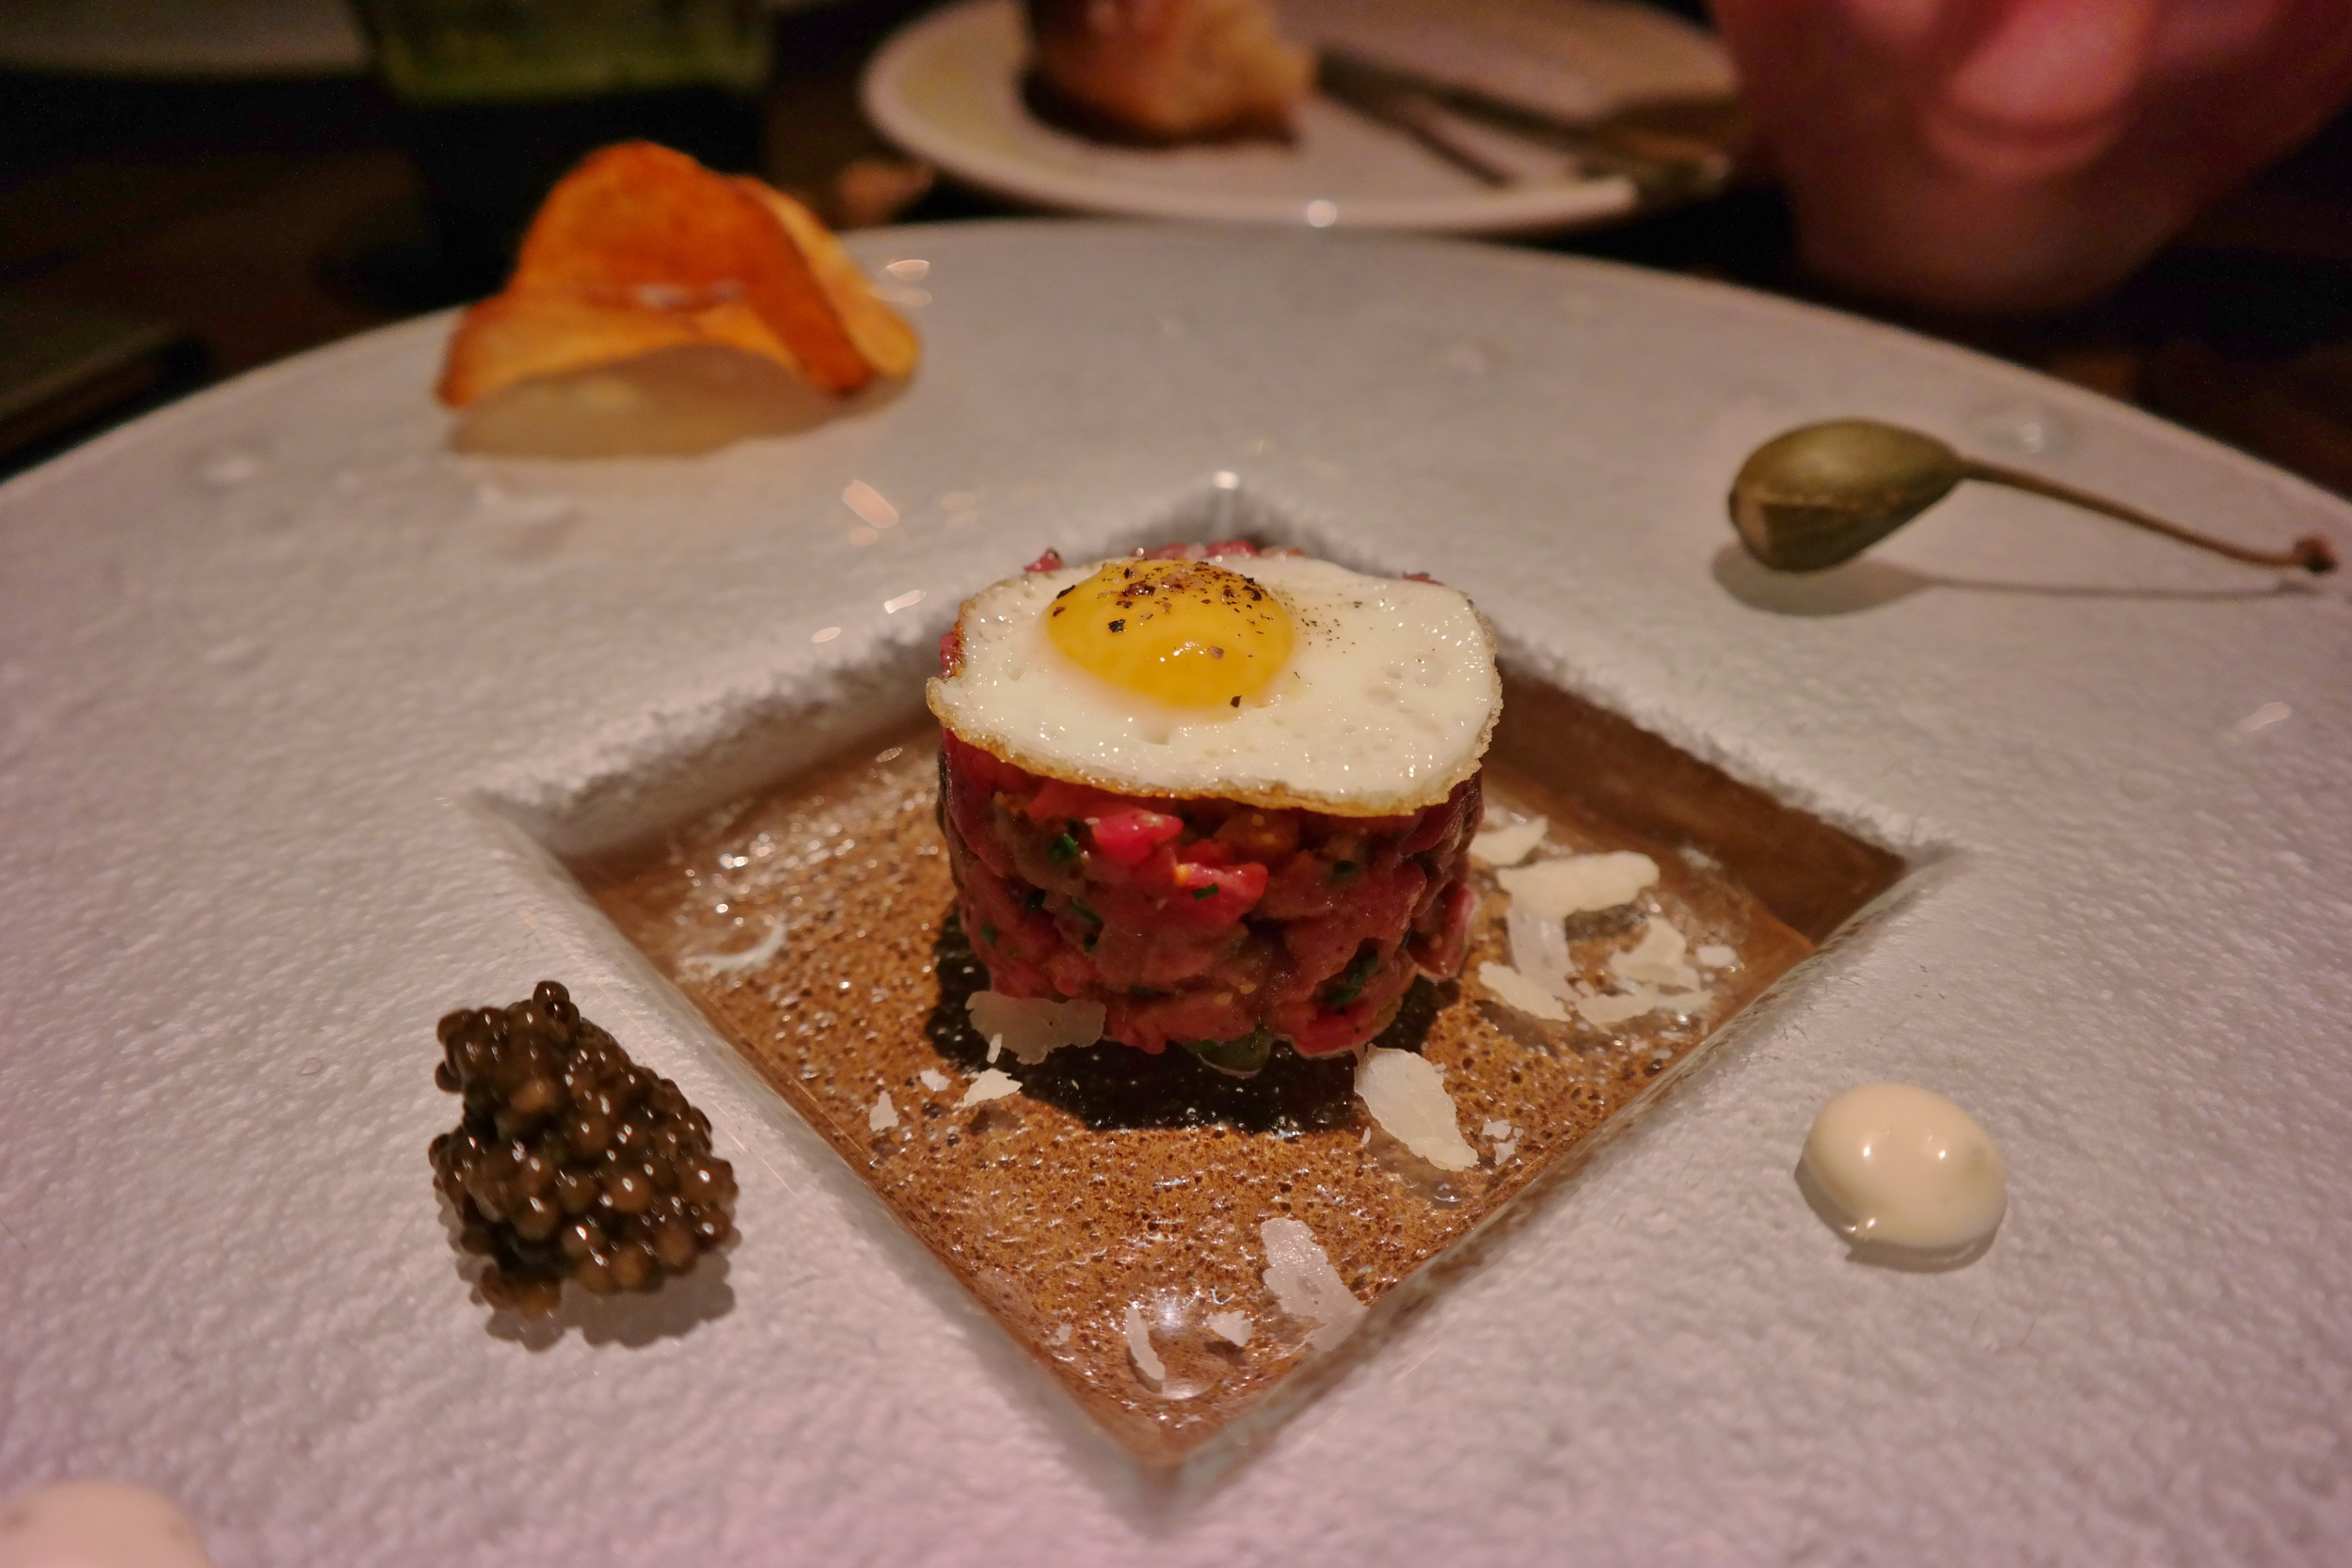 Tartare with quail egg, caviar, and caper berry